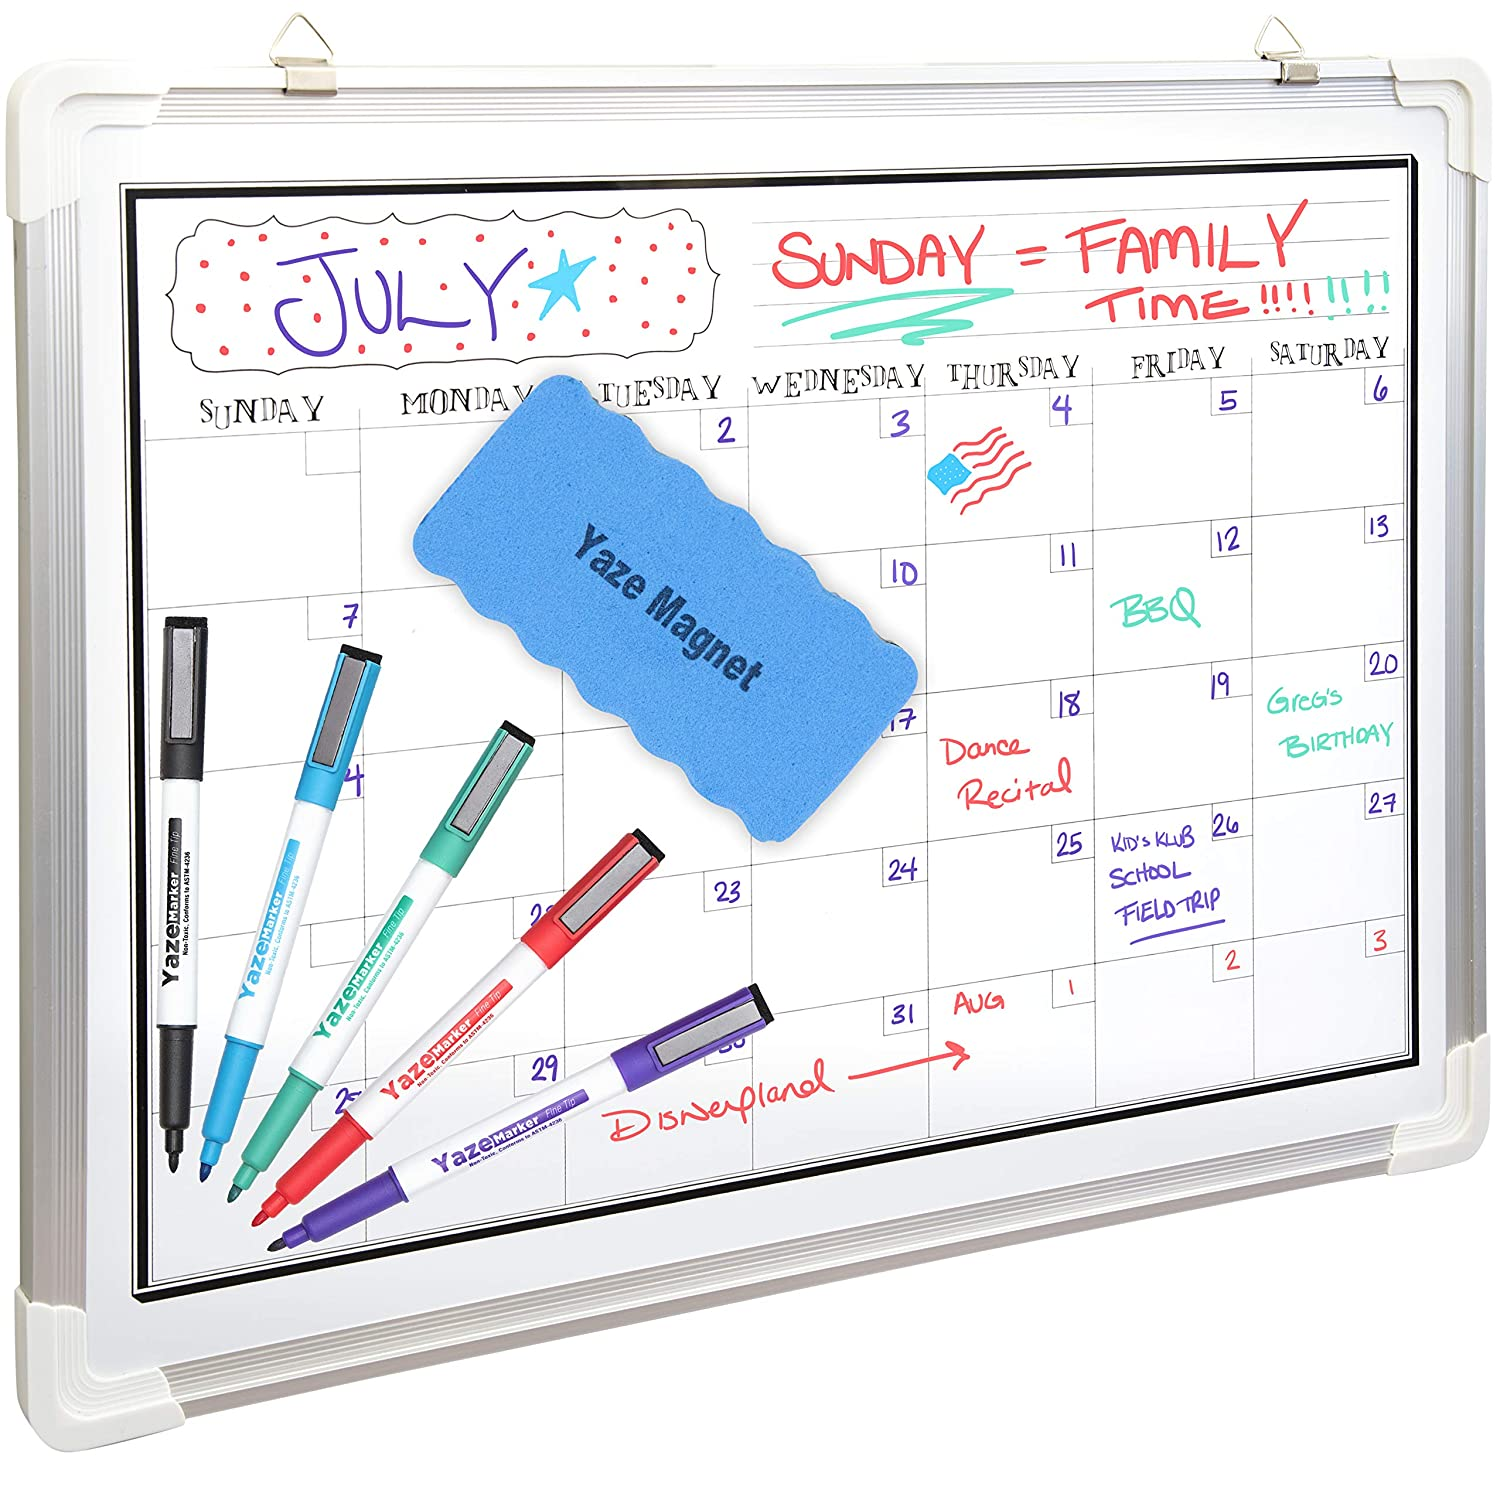 White Board Calendar for Wall | Dry Erase Monthly Planner | 24X18"